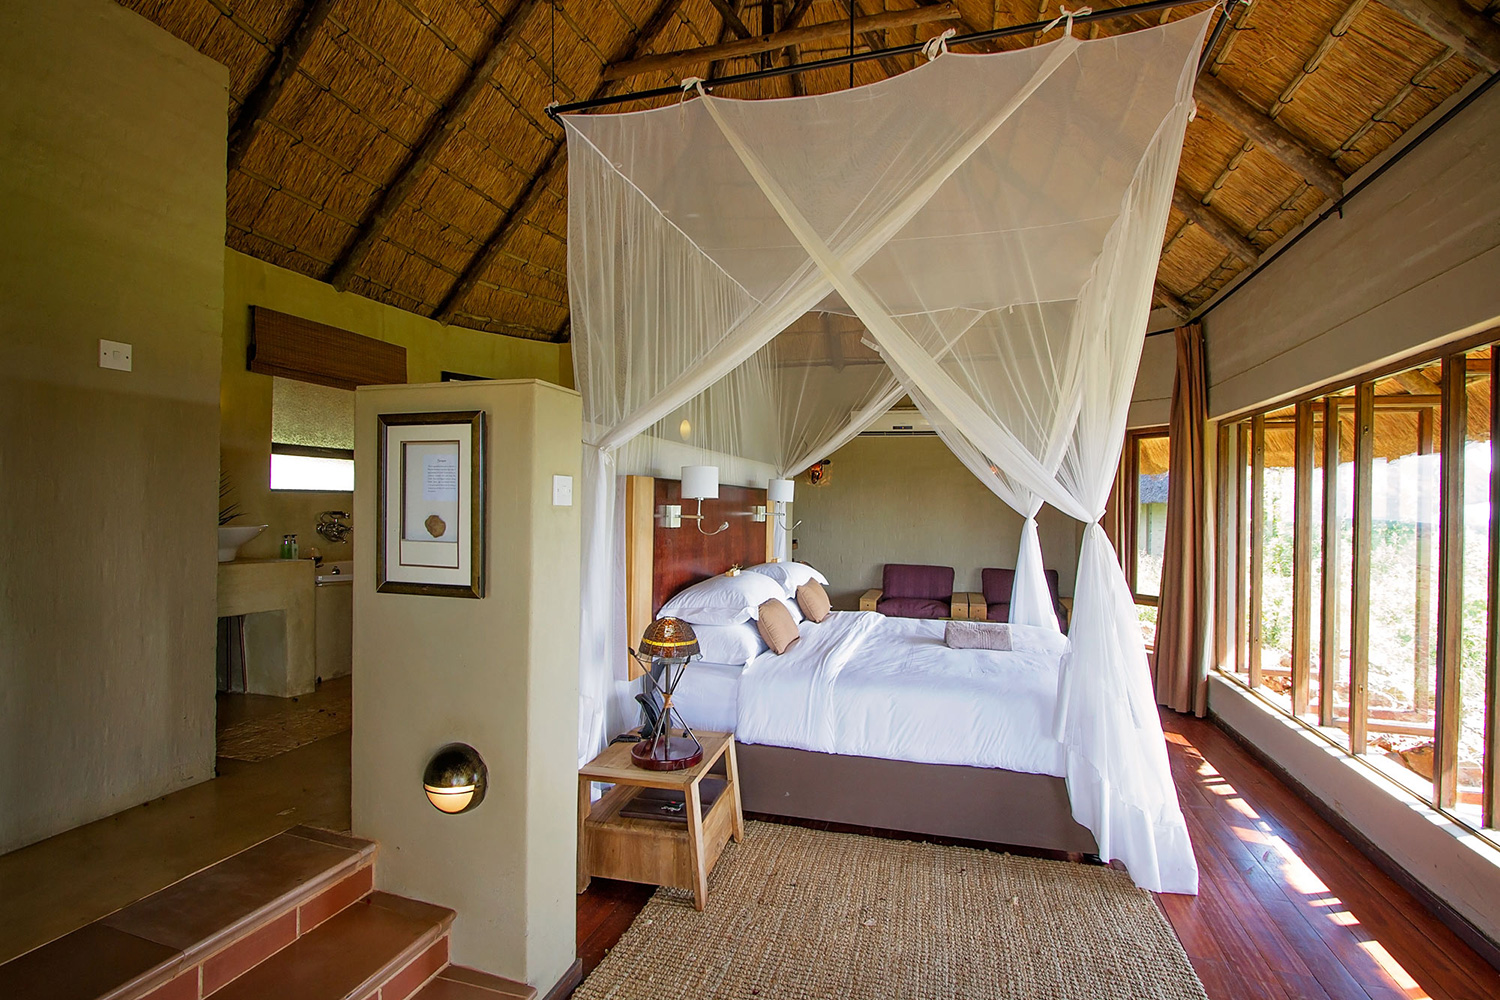 Christmas, holiday packages, getaway packages, travel packages, Botswana, Liquid Giraffe, Wilderness Safaris, Ker and Downey, Africa Albida Tourism, Natural Selection, Desert and Delta